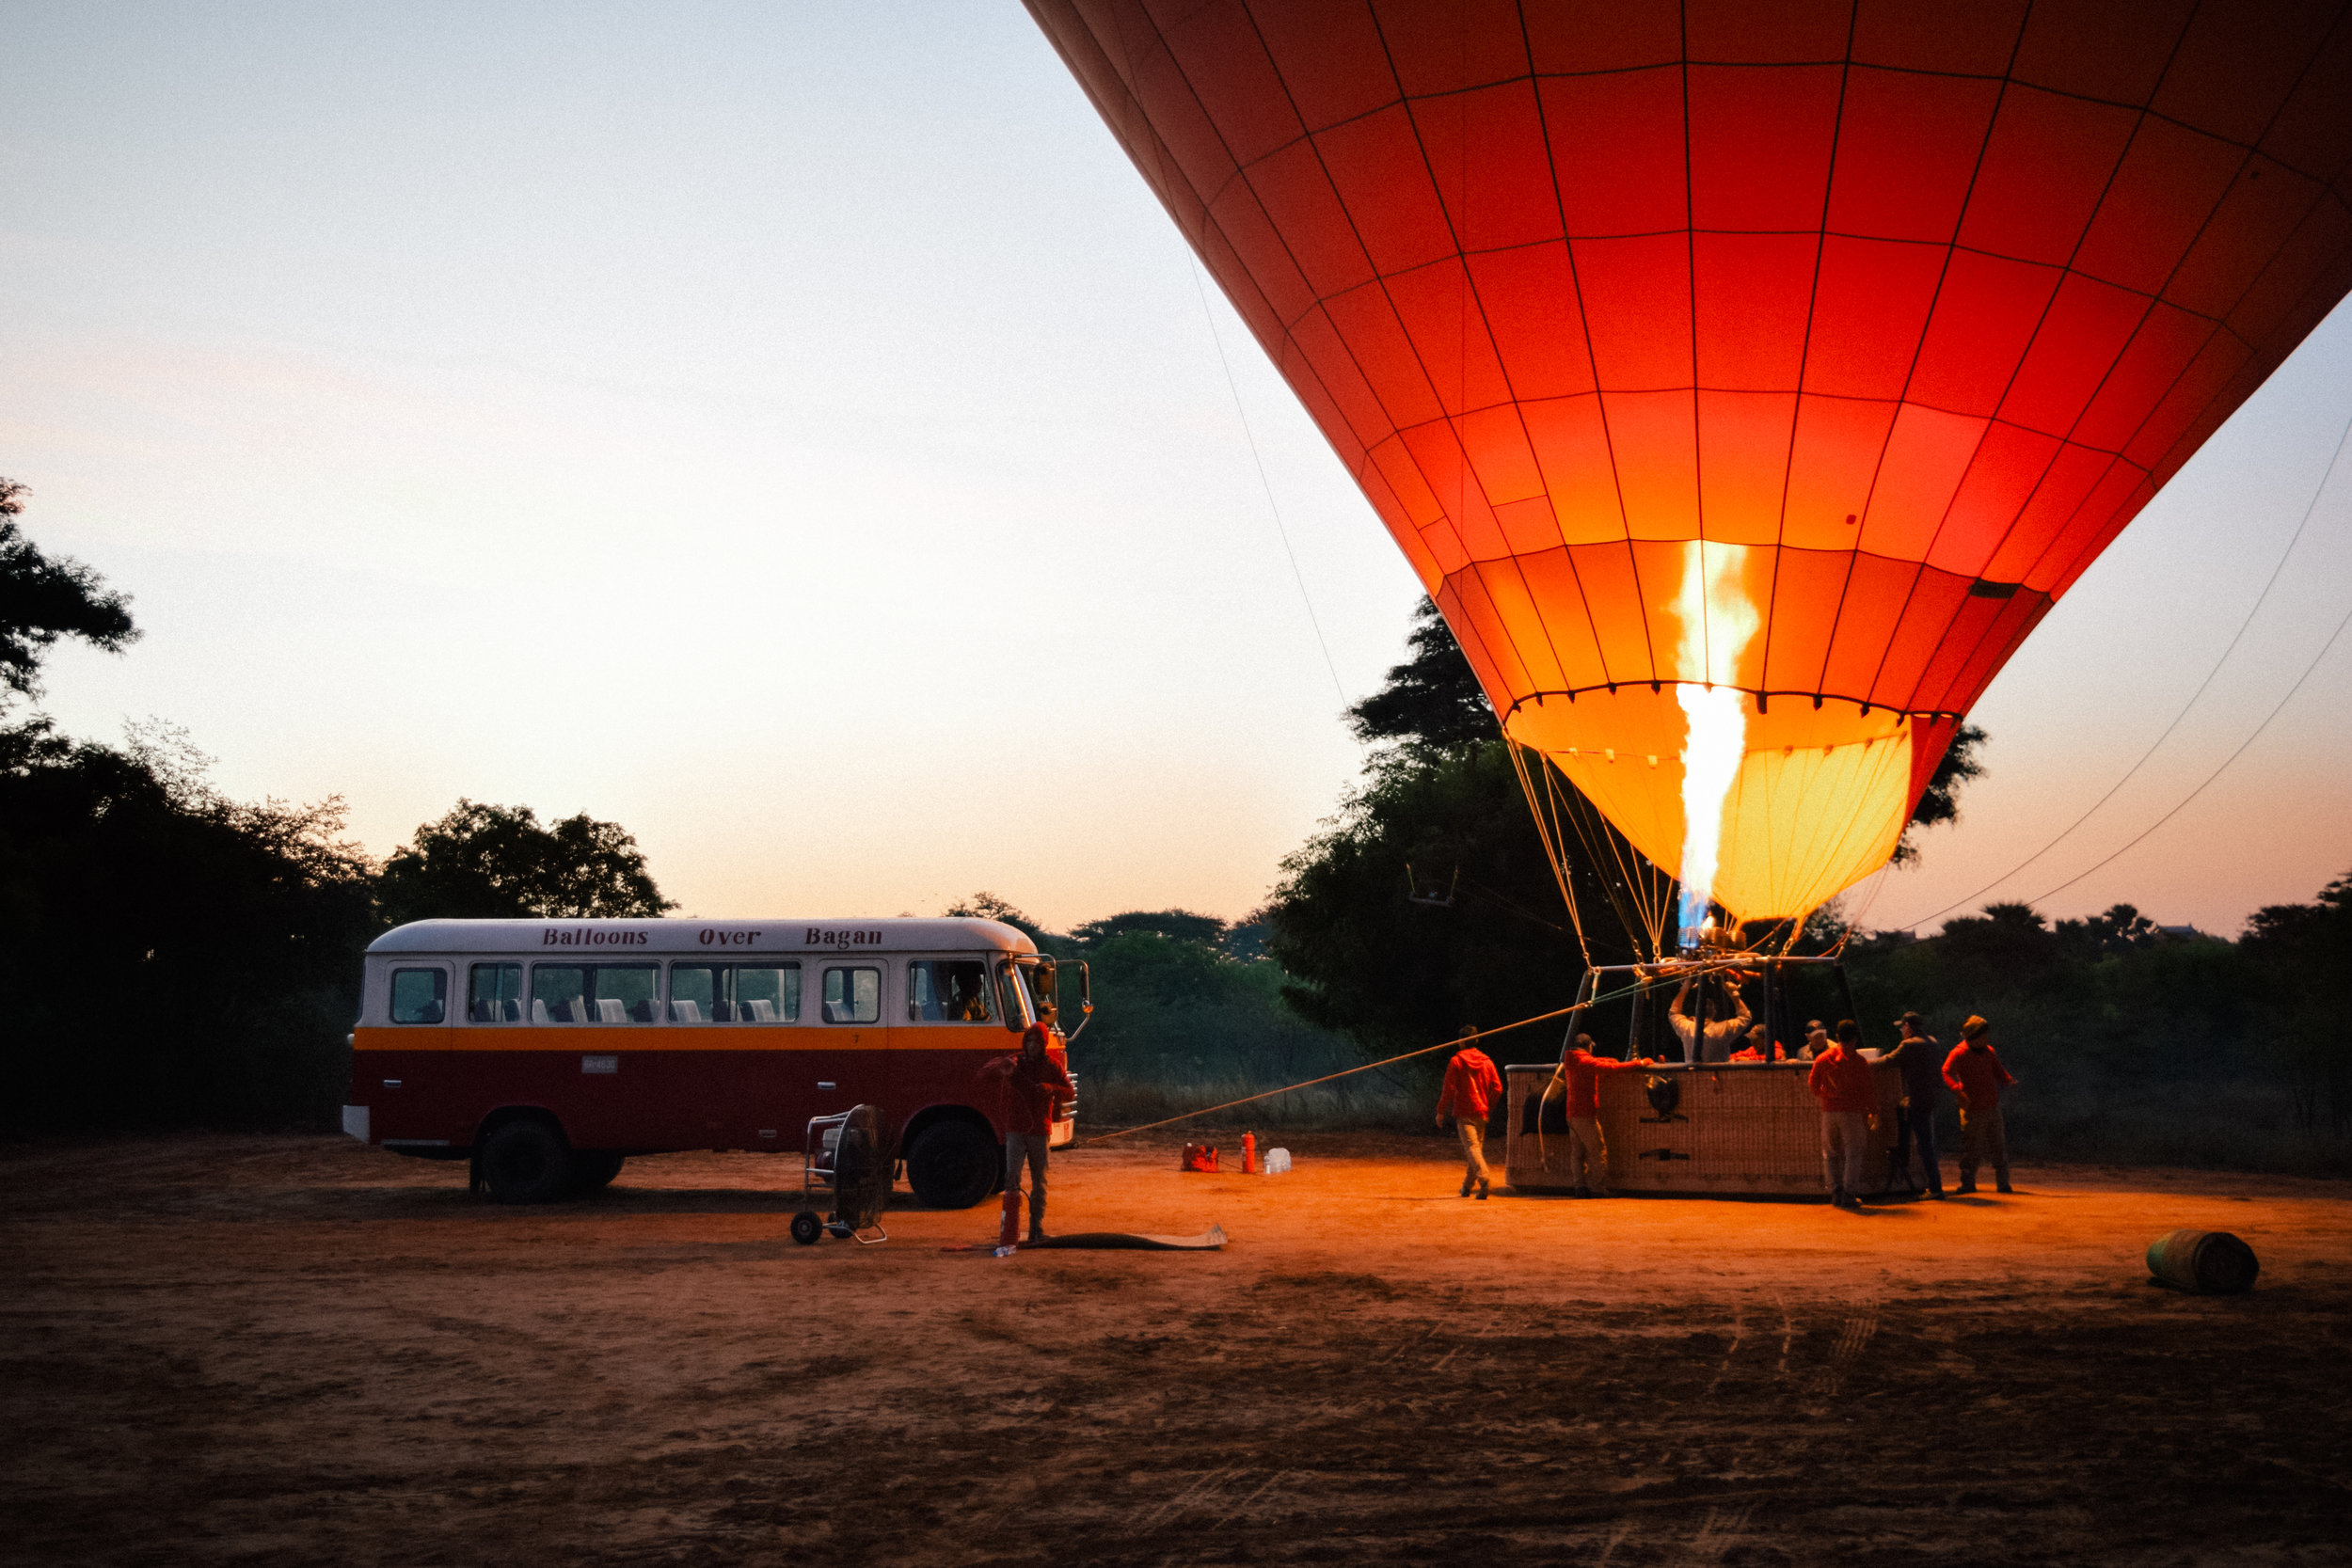 A bus and a balloon in Myanmar